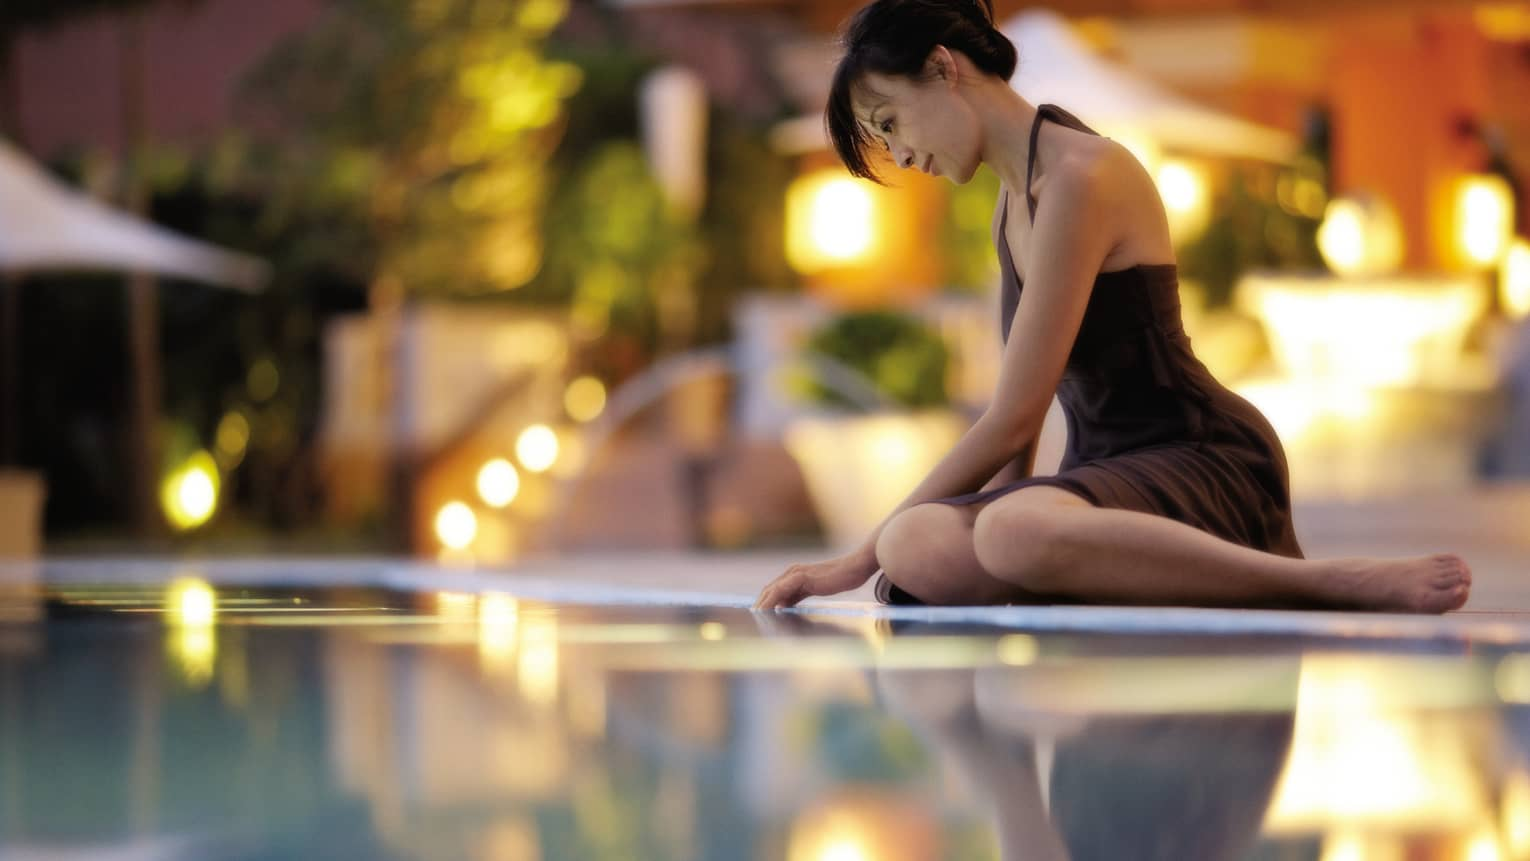 Woman wearing black dress sits on edge of pool, runs fingers over water